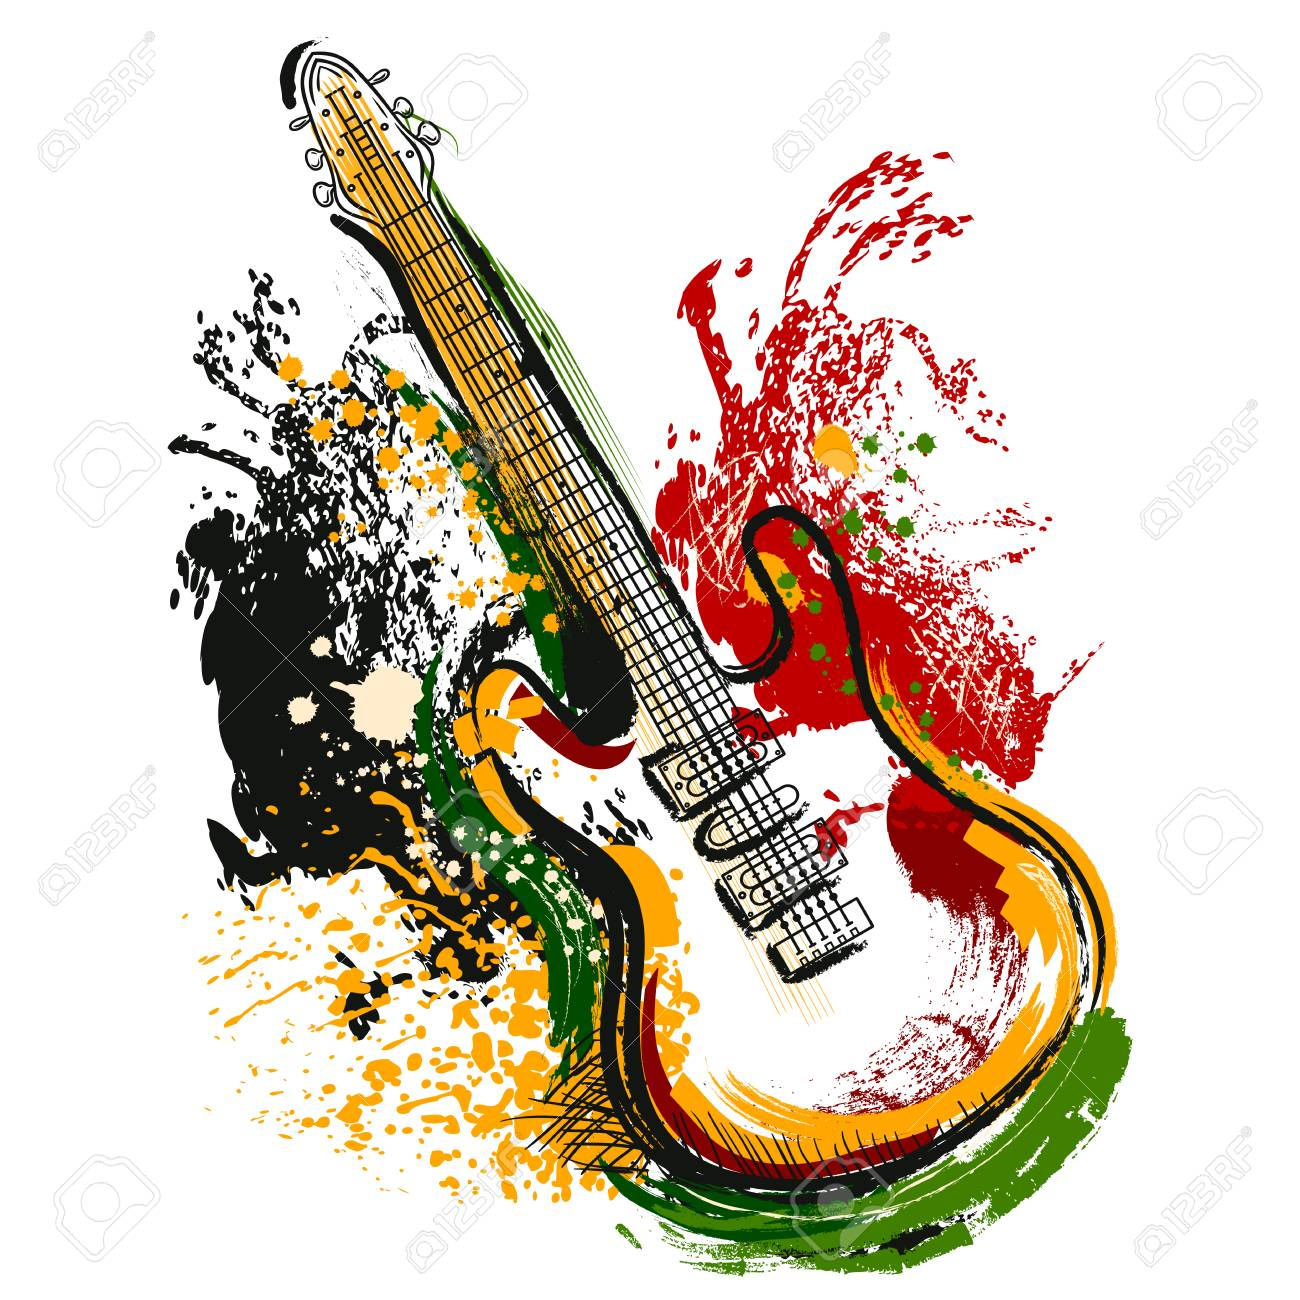 Electric guitar. Hand drawn grunge style art. Retro banner, card, t-shirt, bag, print, poster.Vintage colorful hand drawn vector illustration - 55587383